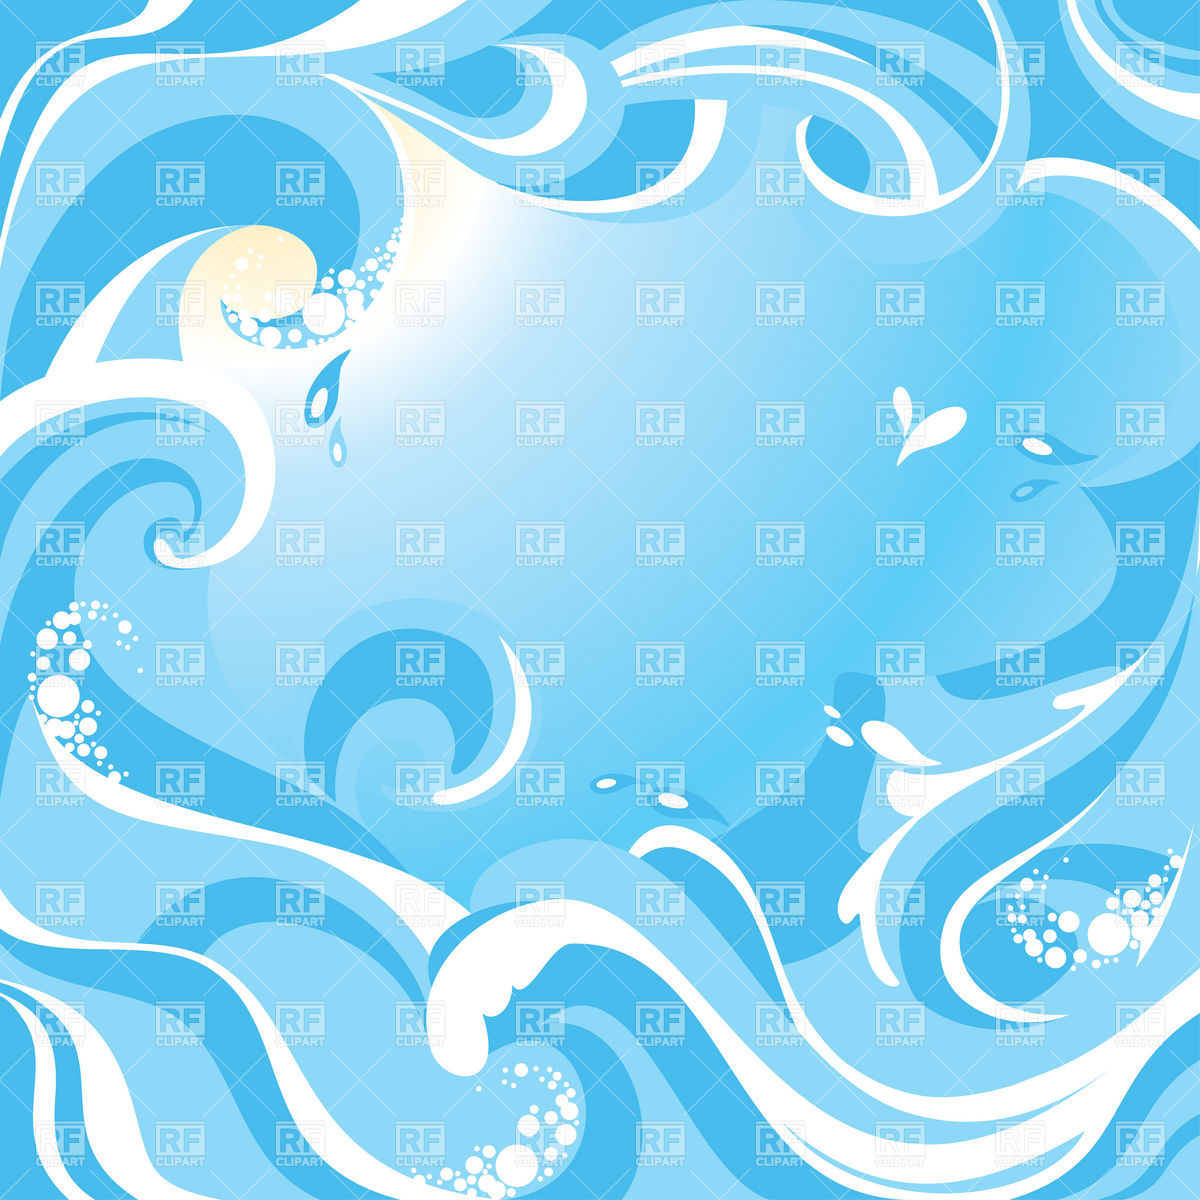 Water clipart hd download.